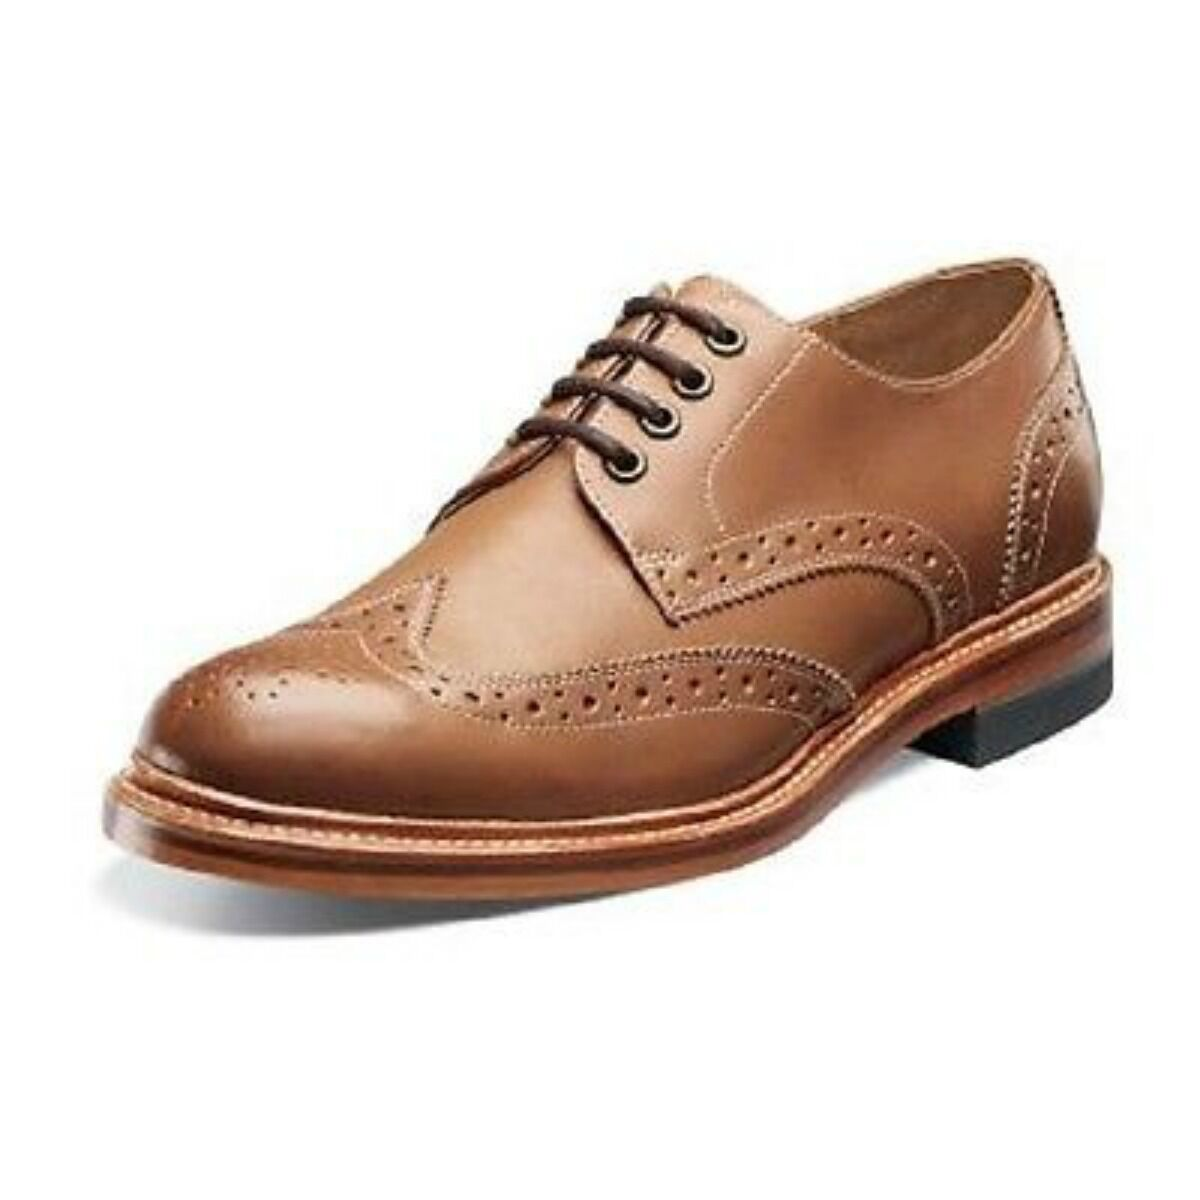 Stacy Adams Madison II Mens Wing Tip Oxford Tan Leather Dress shoes 00061-240